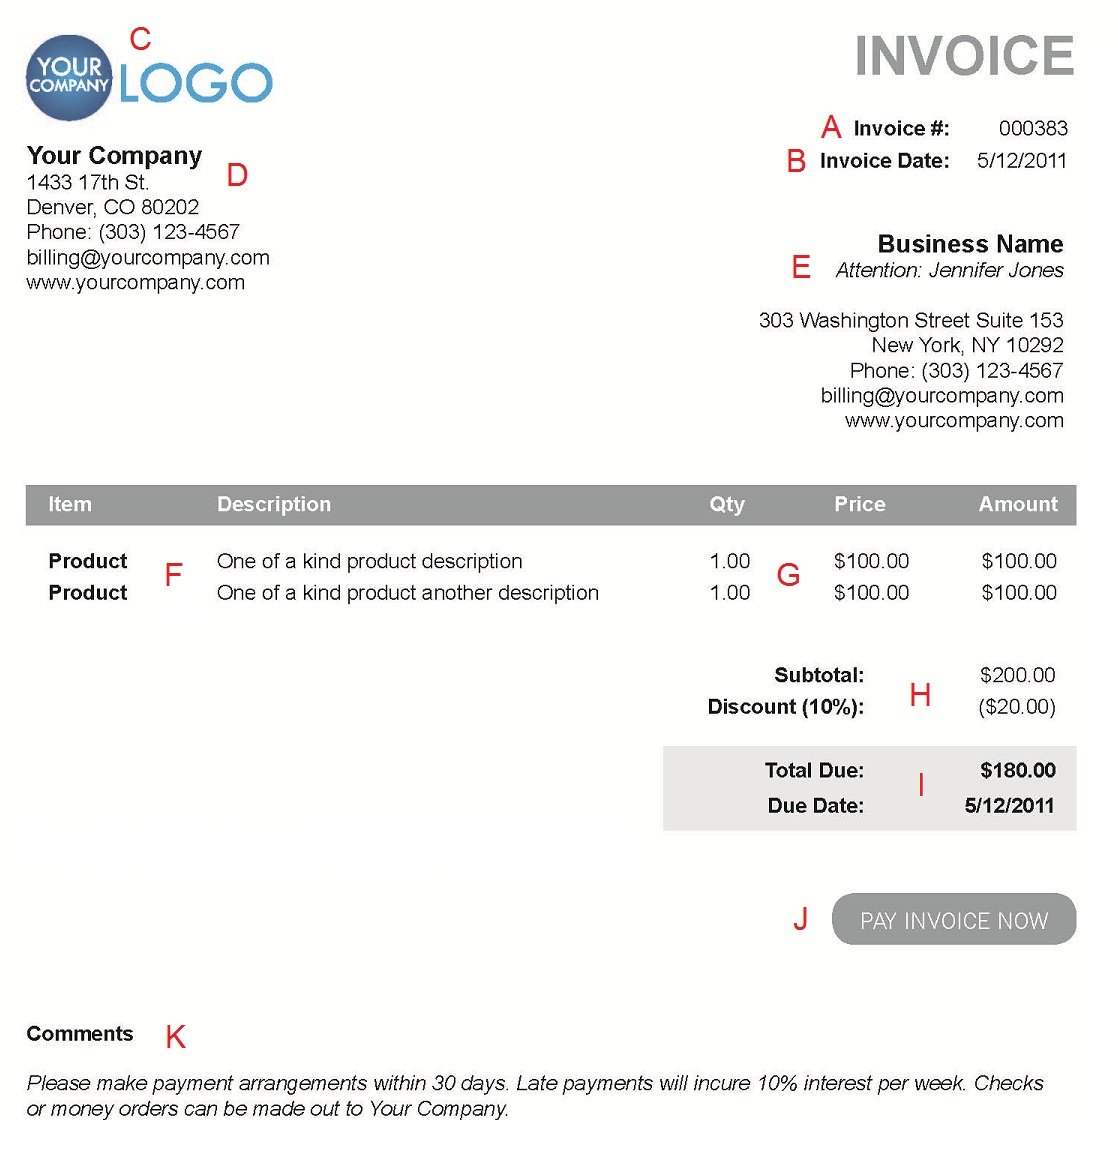 Indianaparanormalus  Unique The  Different Sections Of An Electronic Payment Invoice With Magnificent A  With Easy On The Eye Web Design Invoice Template Word Also Design Your Own Invoice Book In Addition Free Sample Invoice Template Word And Proforma Invoice And Commercial Invoice Difference As Well As Make A Invoice Additionally Nota Invoice From Paysimplecom With Indianaparanormalus  Magnificent The  Different Sections Of An Electronic Payment Invoice With Easy On The Eye A  And Unique Web Design Invoice Template Word Also Design Your Own Invoice Book In Addition Free Sample Invoice Template Word From Paysimplecom